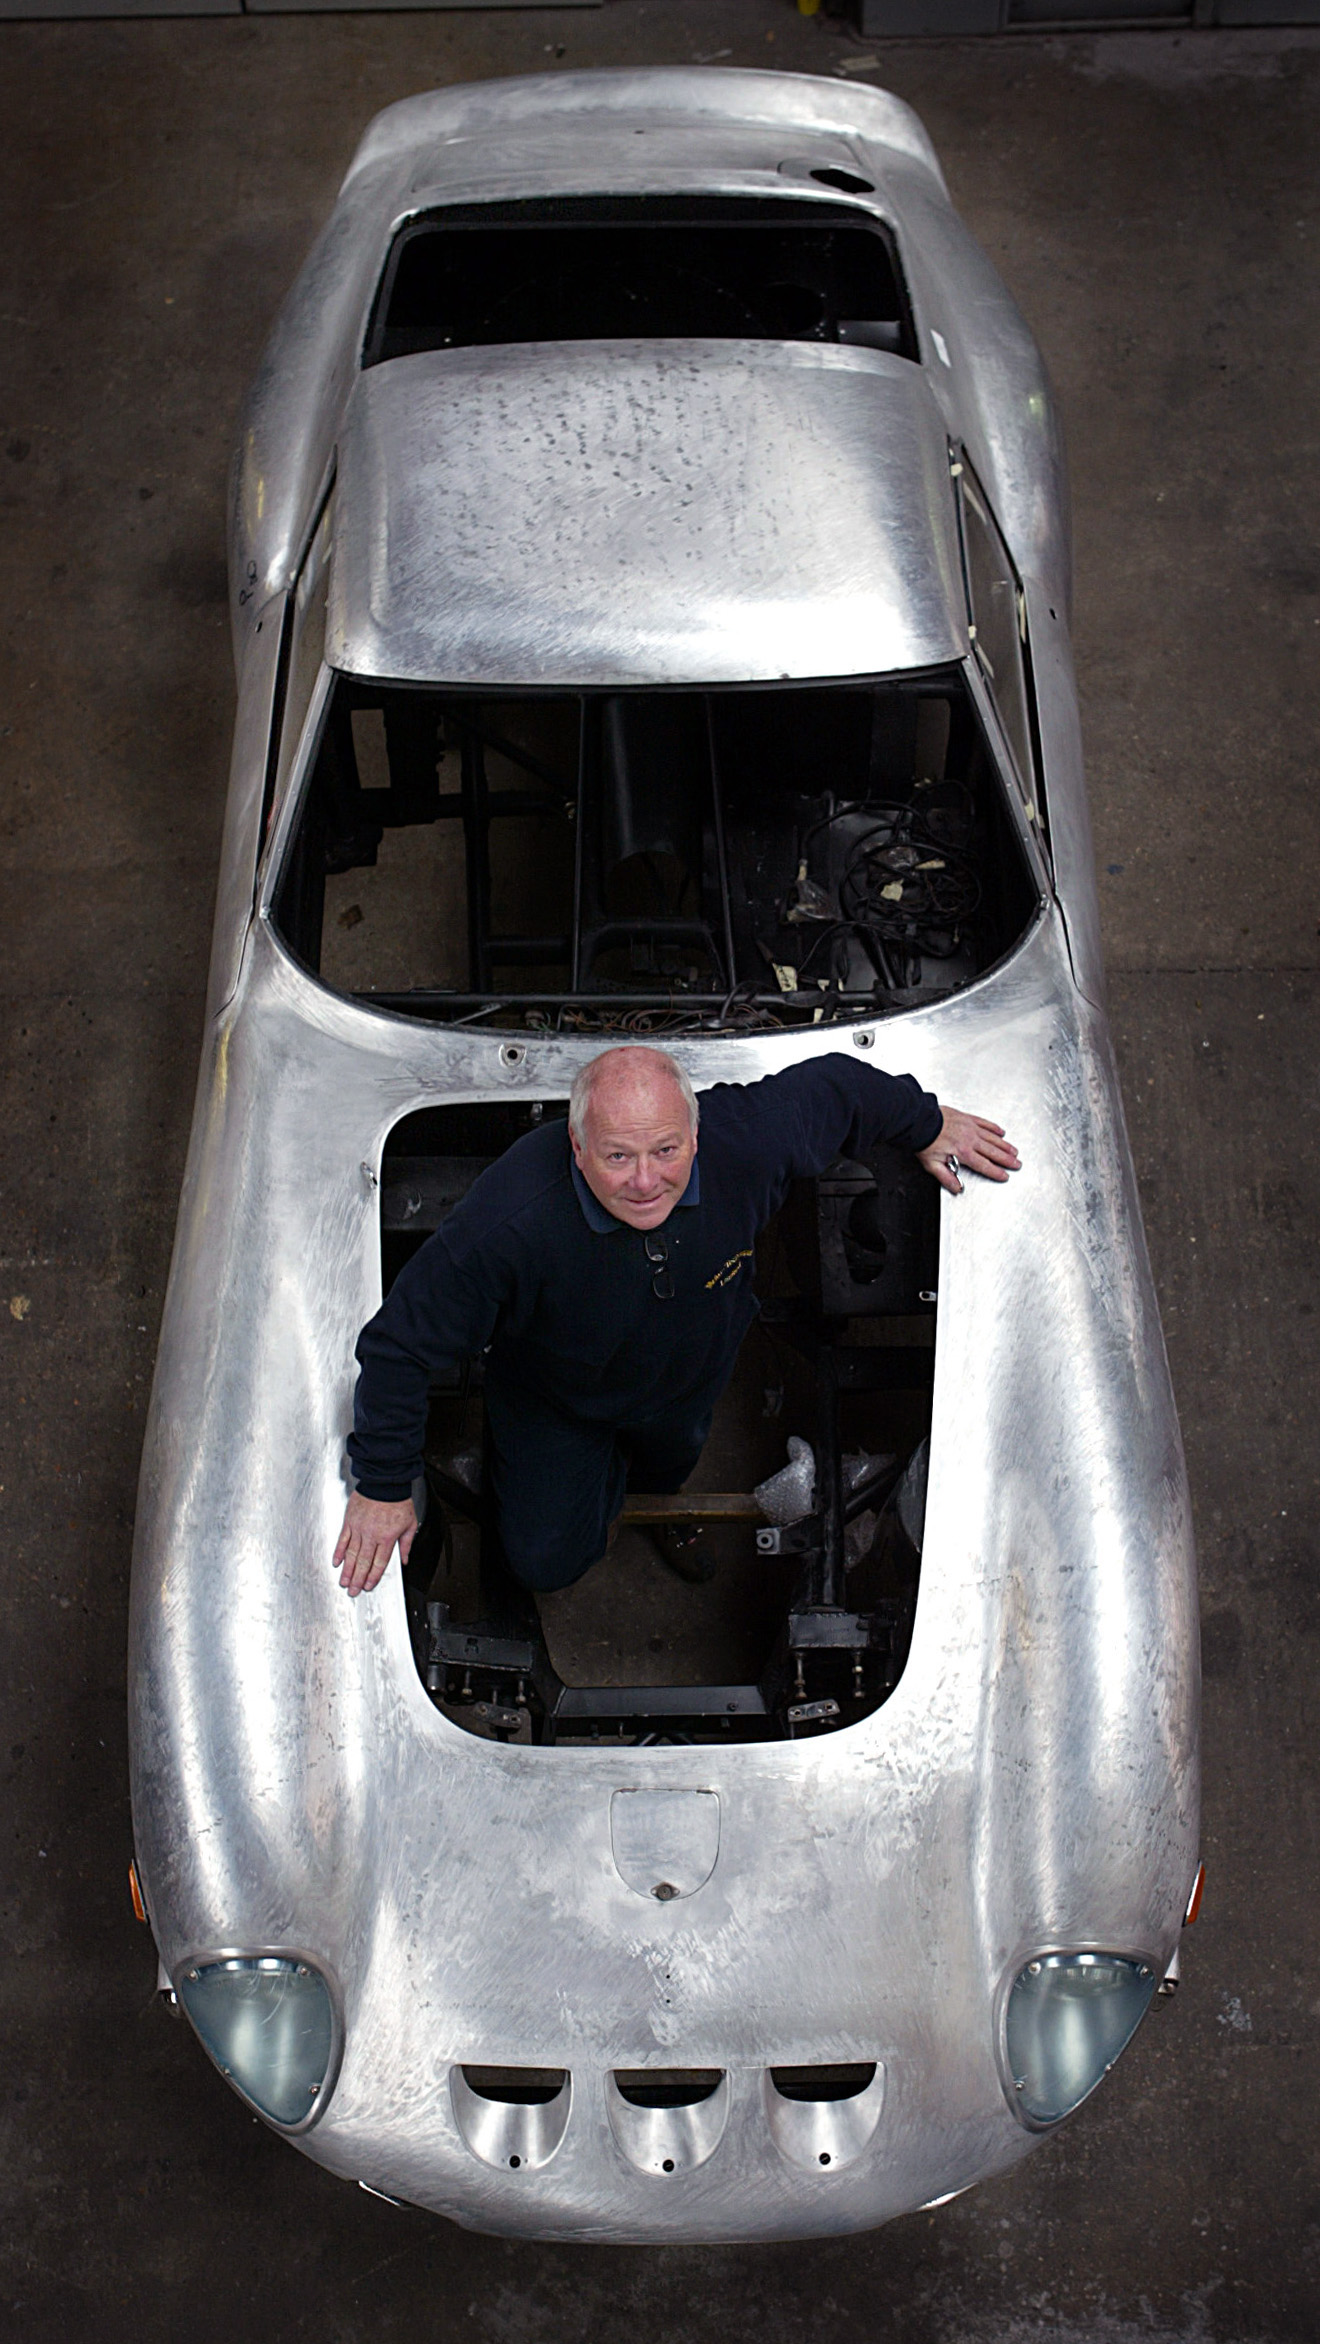 Kevin O'Rourke standing in the engine bay of the perfectly repaired and restored body shell of a Ferrari 250 GTO #3527 prior to it visiting the Moto Technique paint shop.